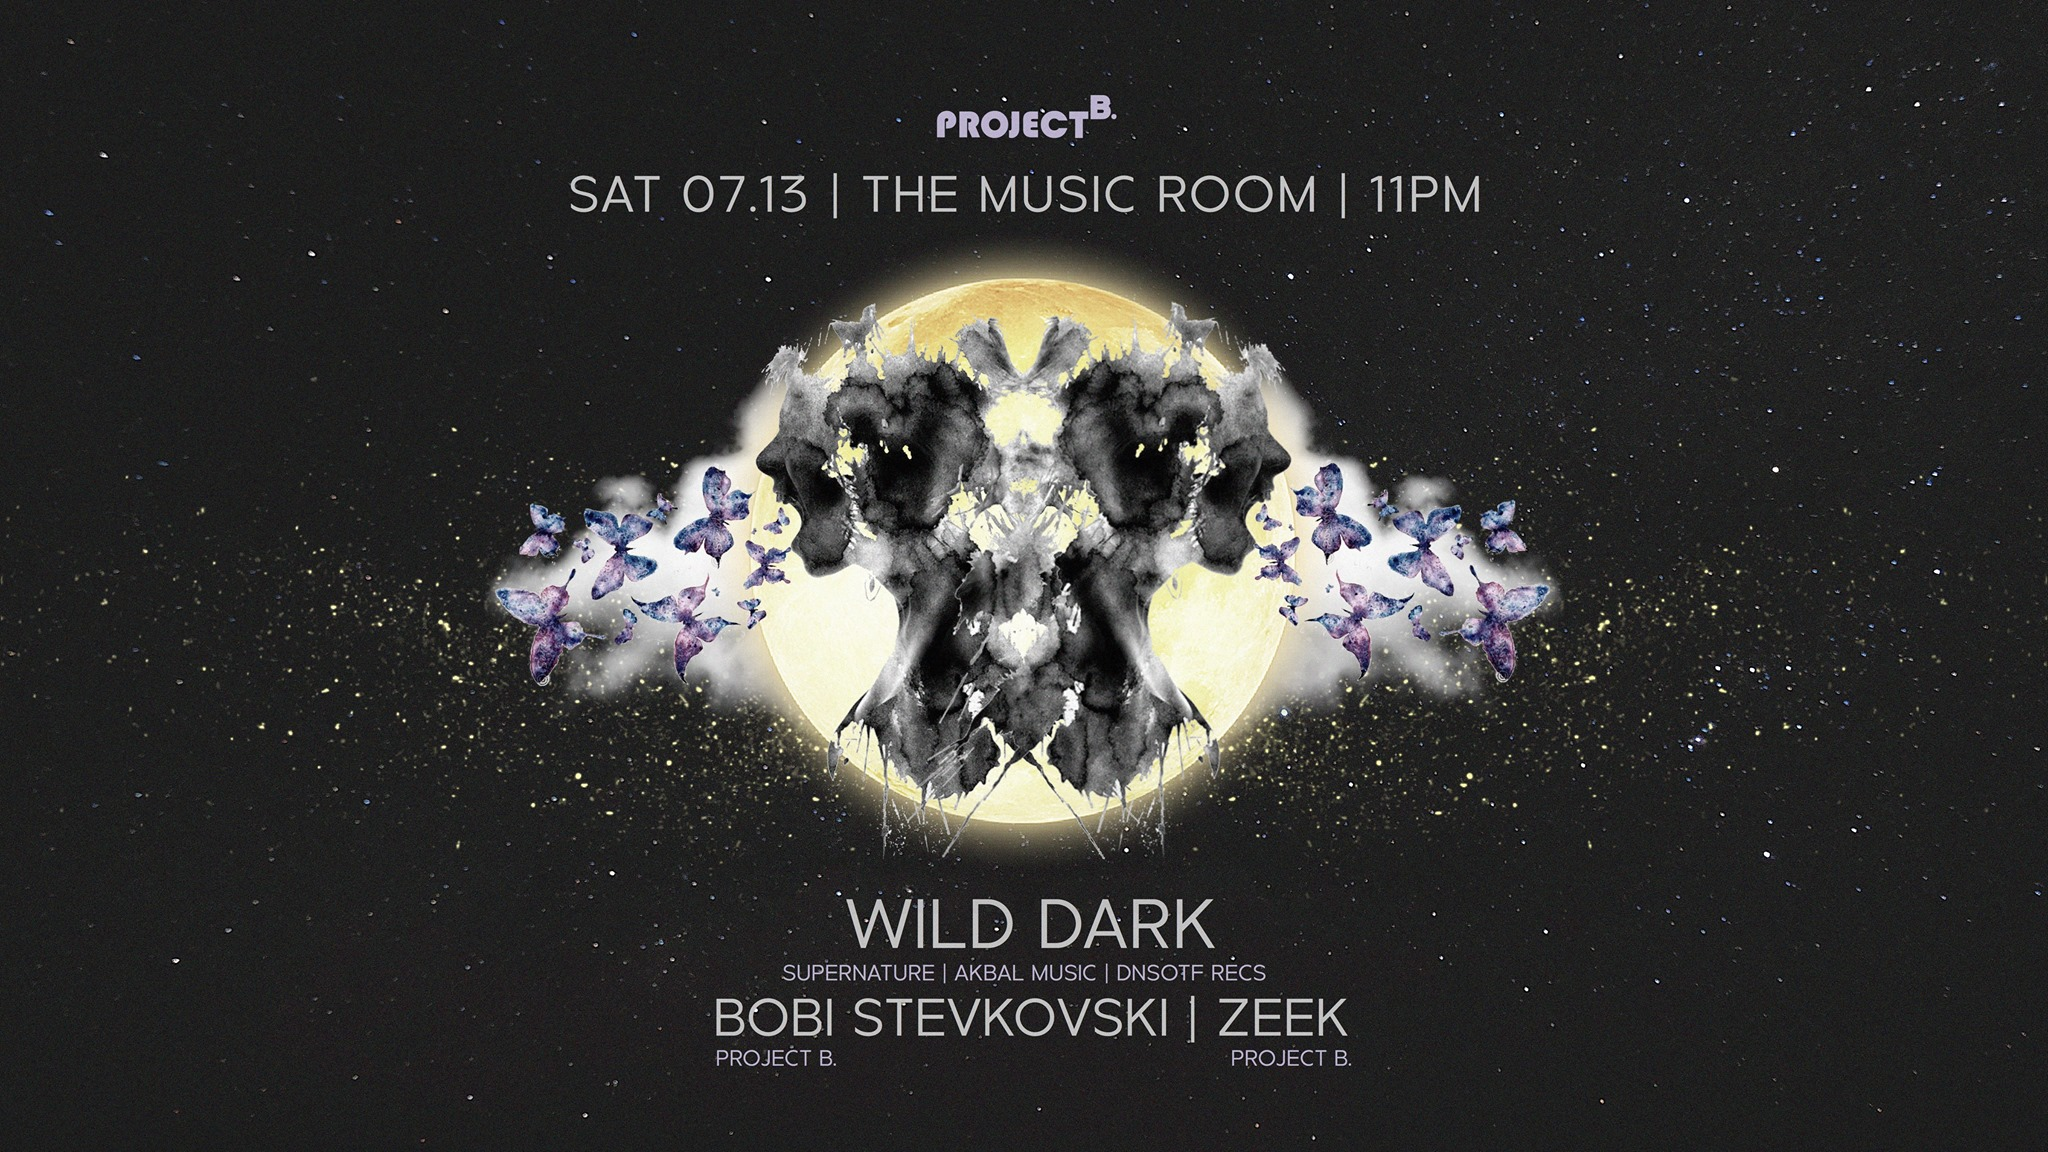 THE MUSIC ROOM - WILD DARK